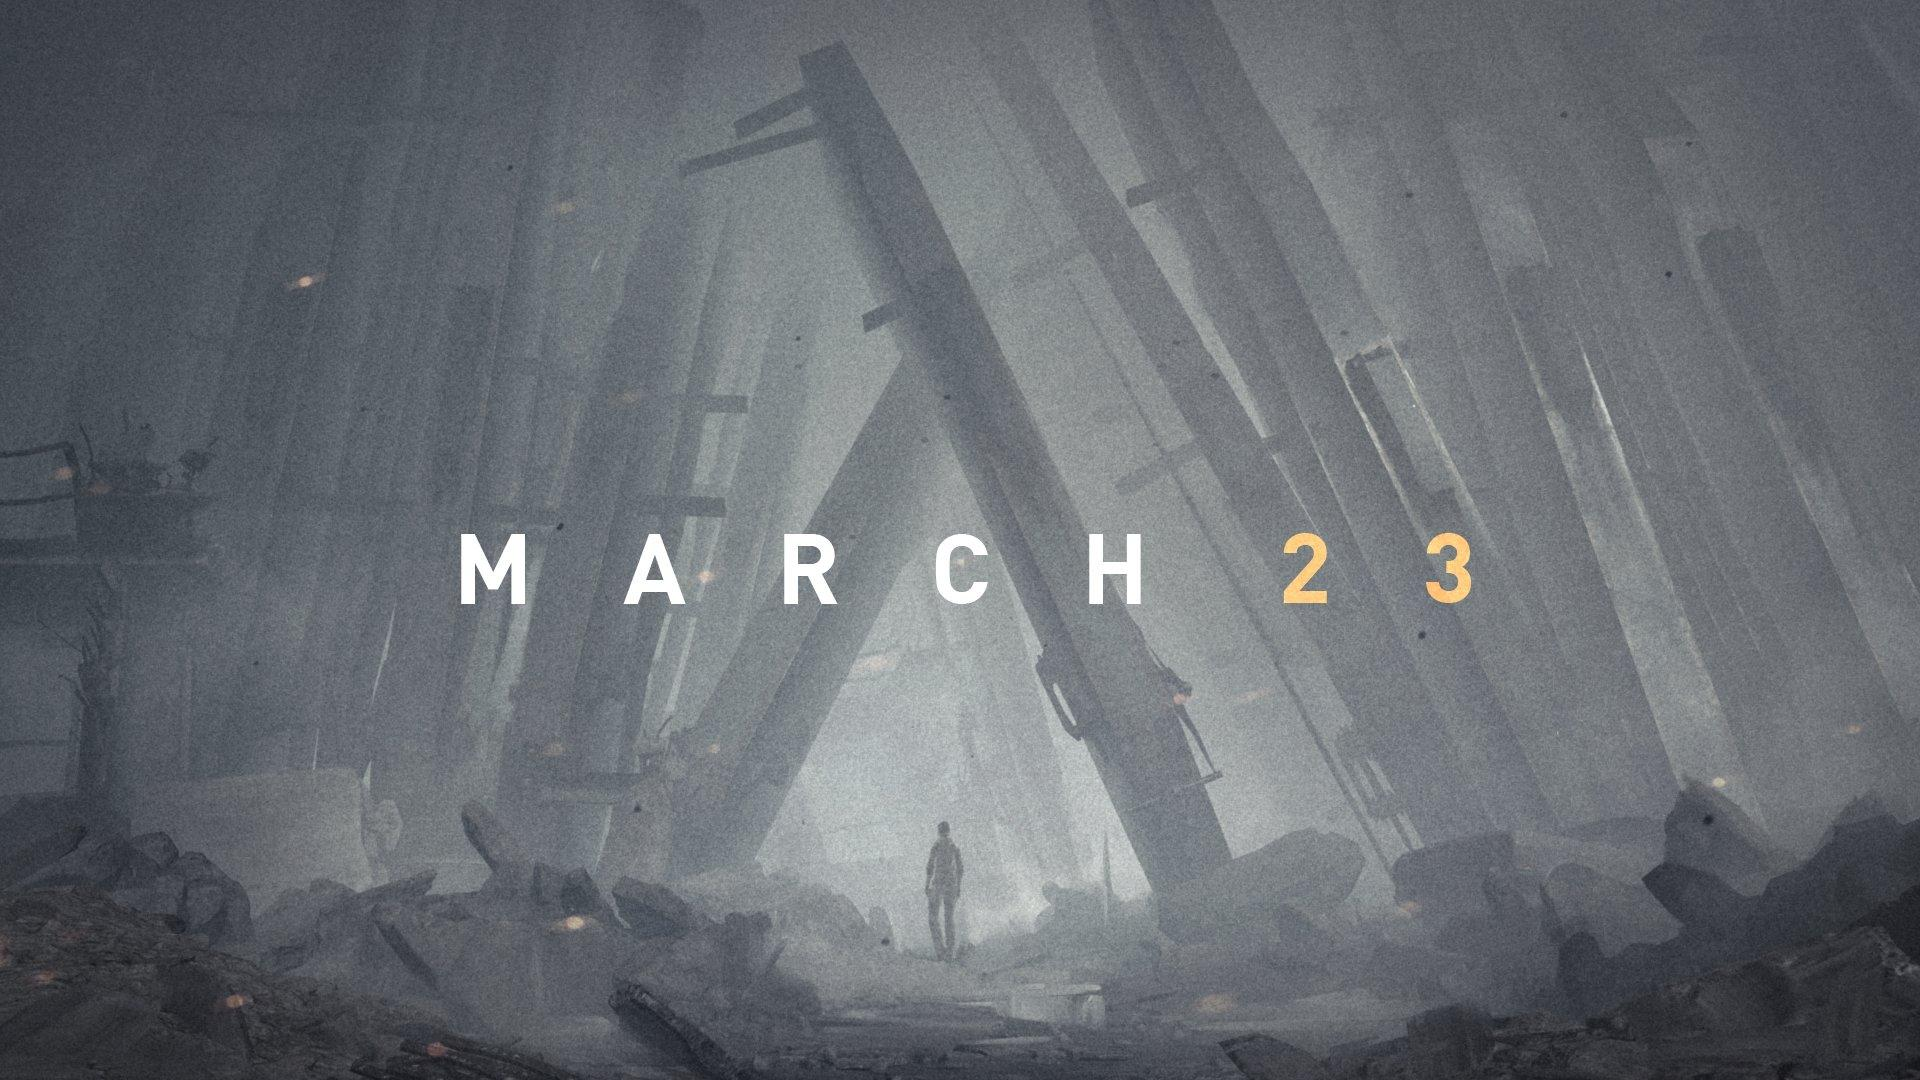 Half Life Alyx Targets March 23 Release